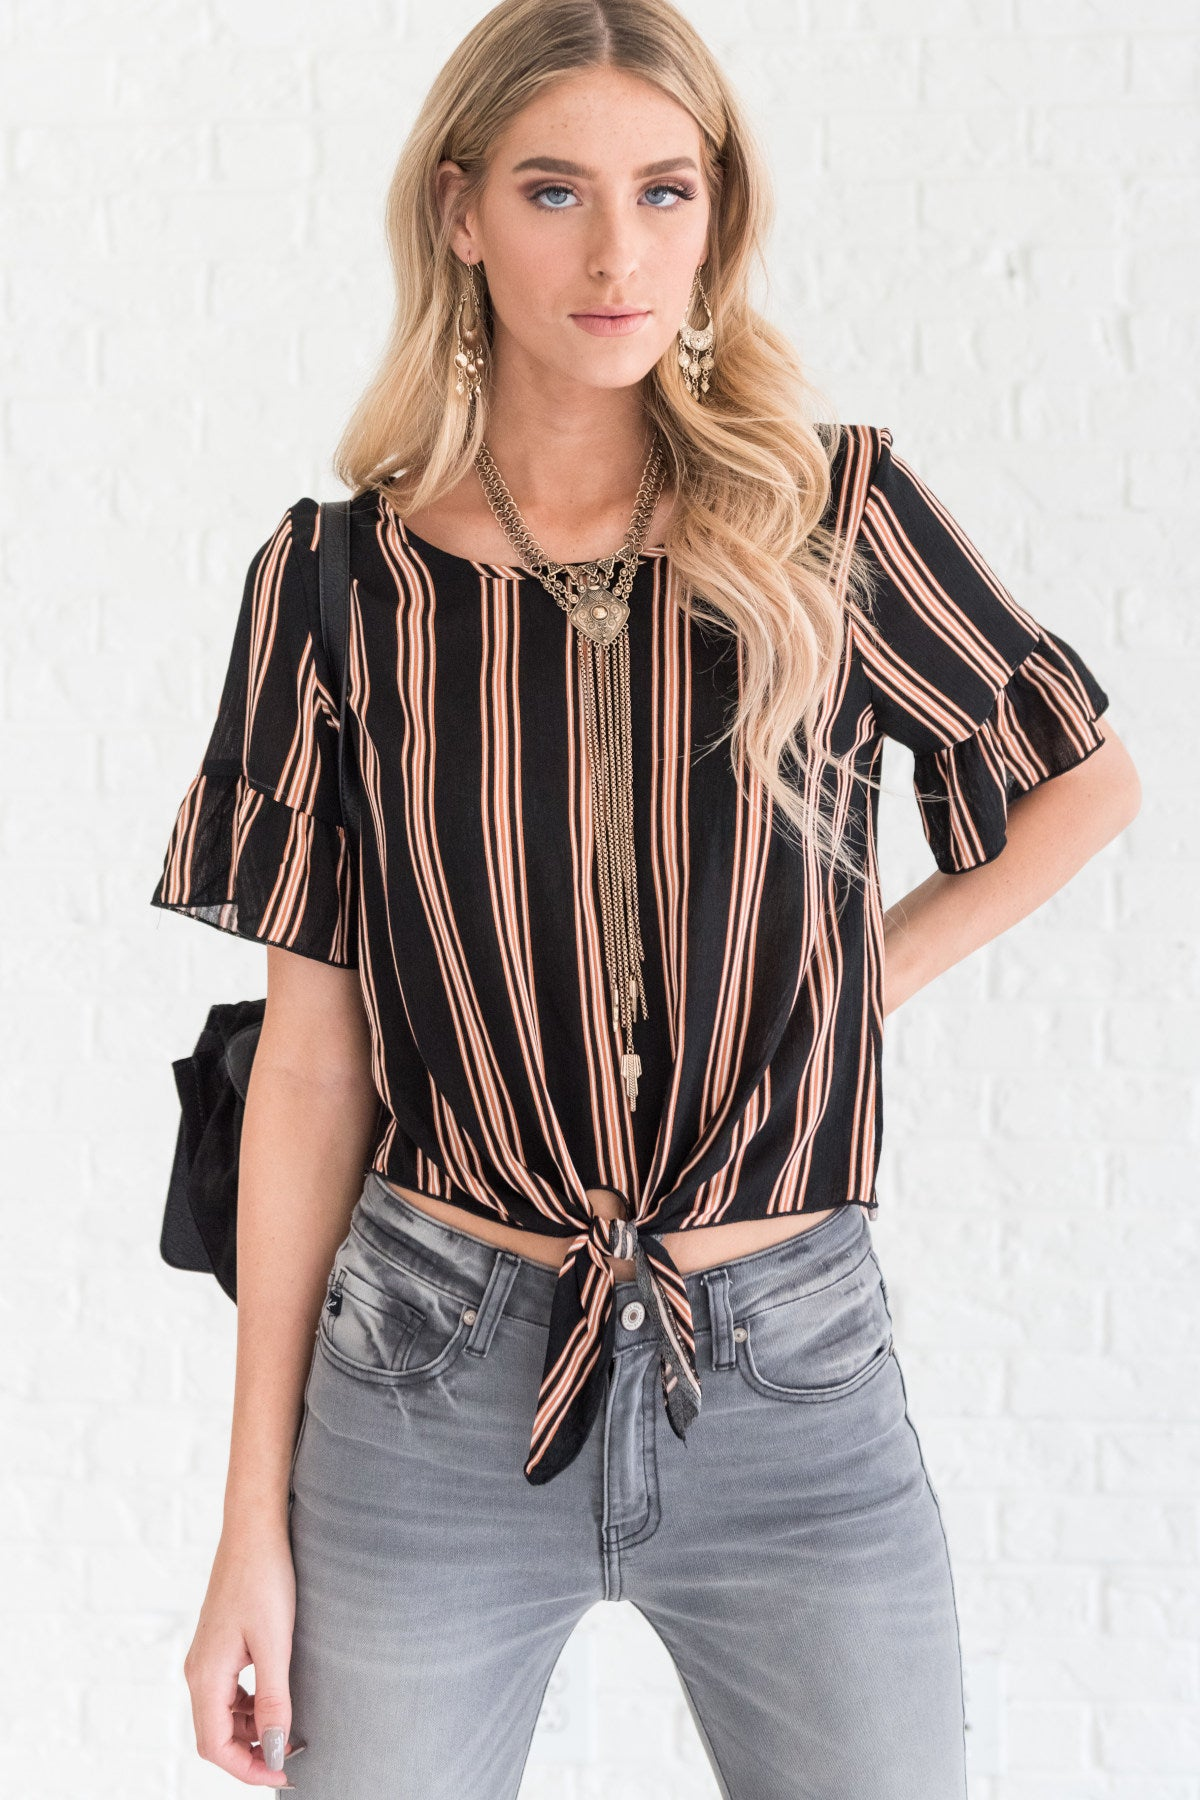 Black Striped Dressy Tops for Women